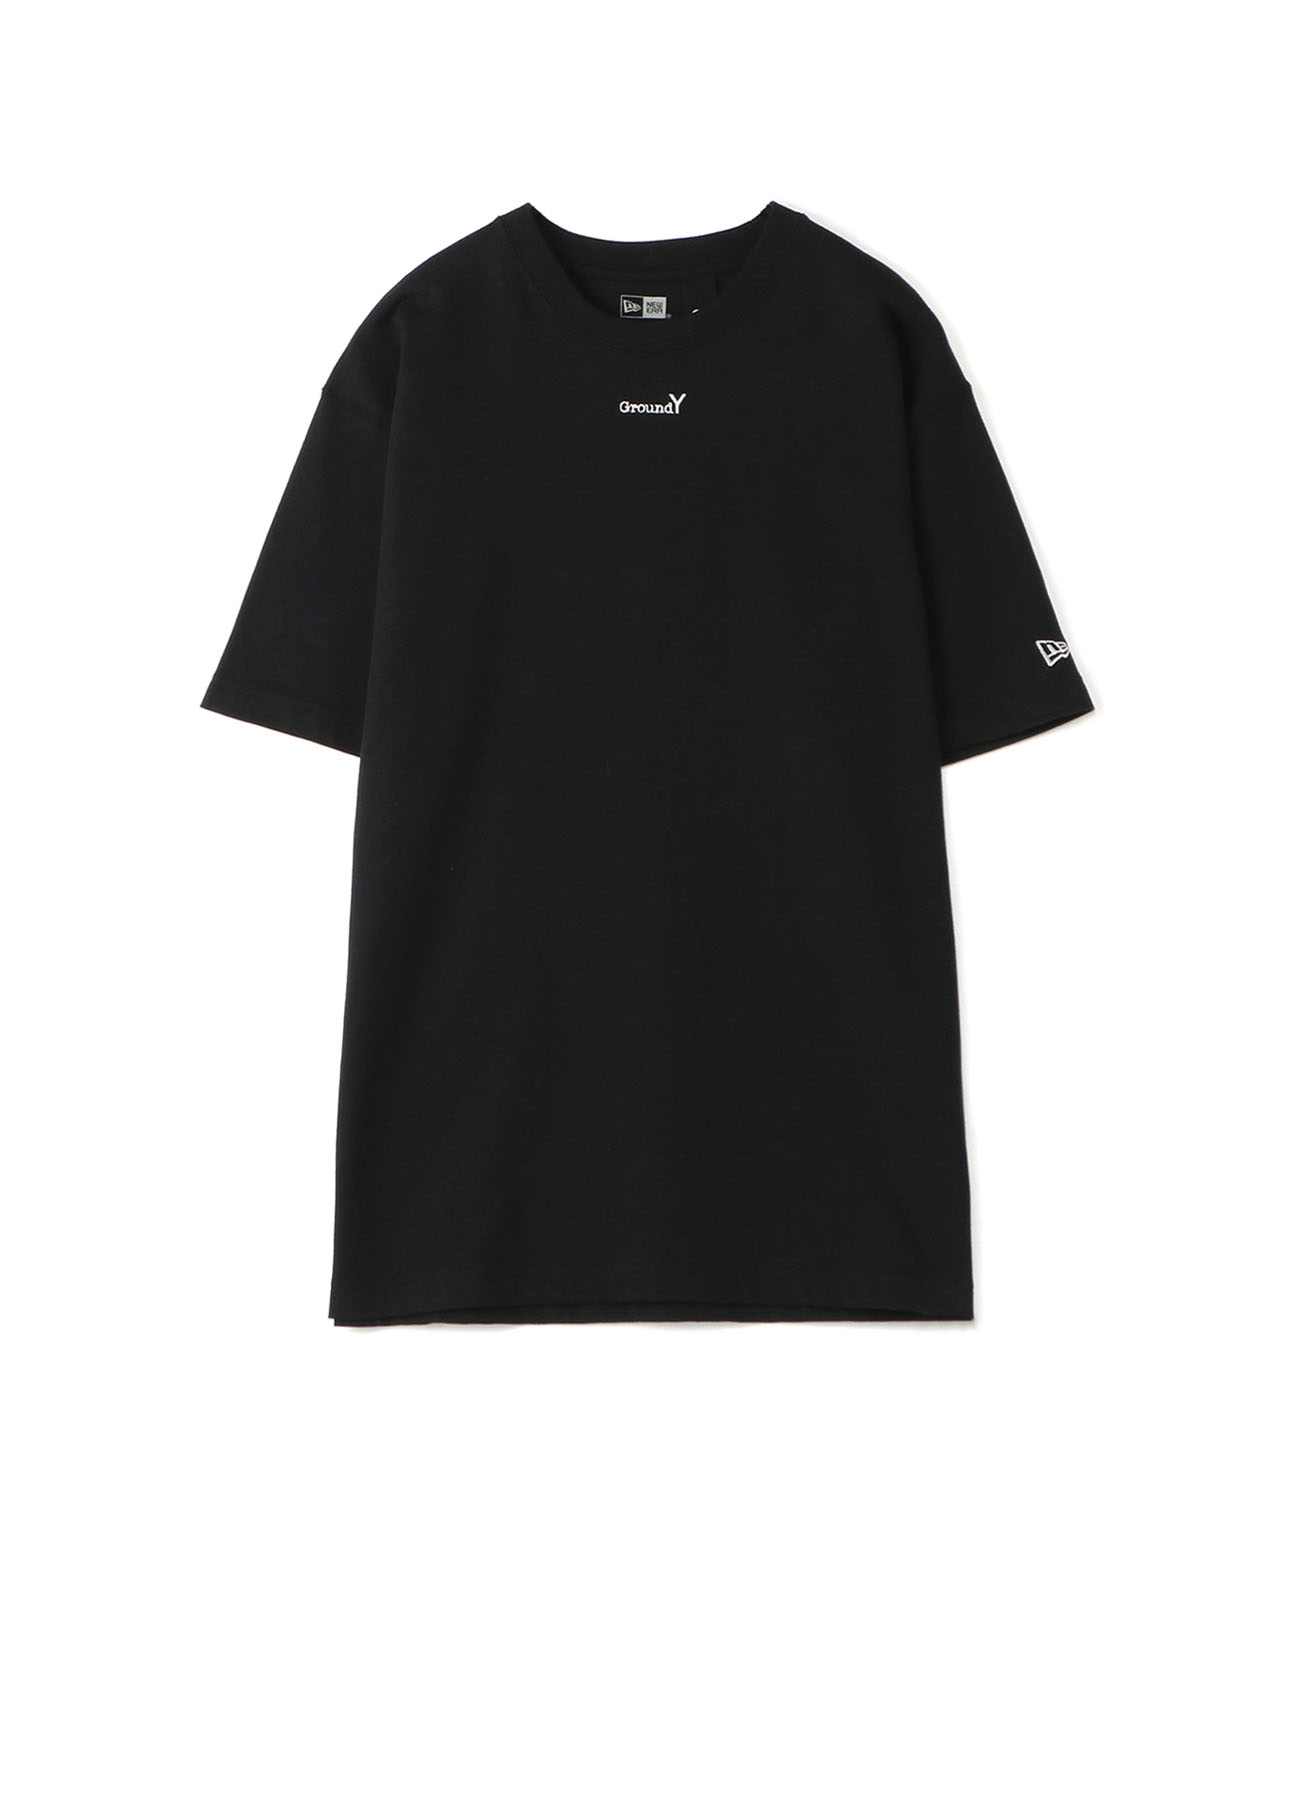 Ground Y×NEW ERA Collection Logo T